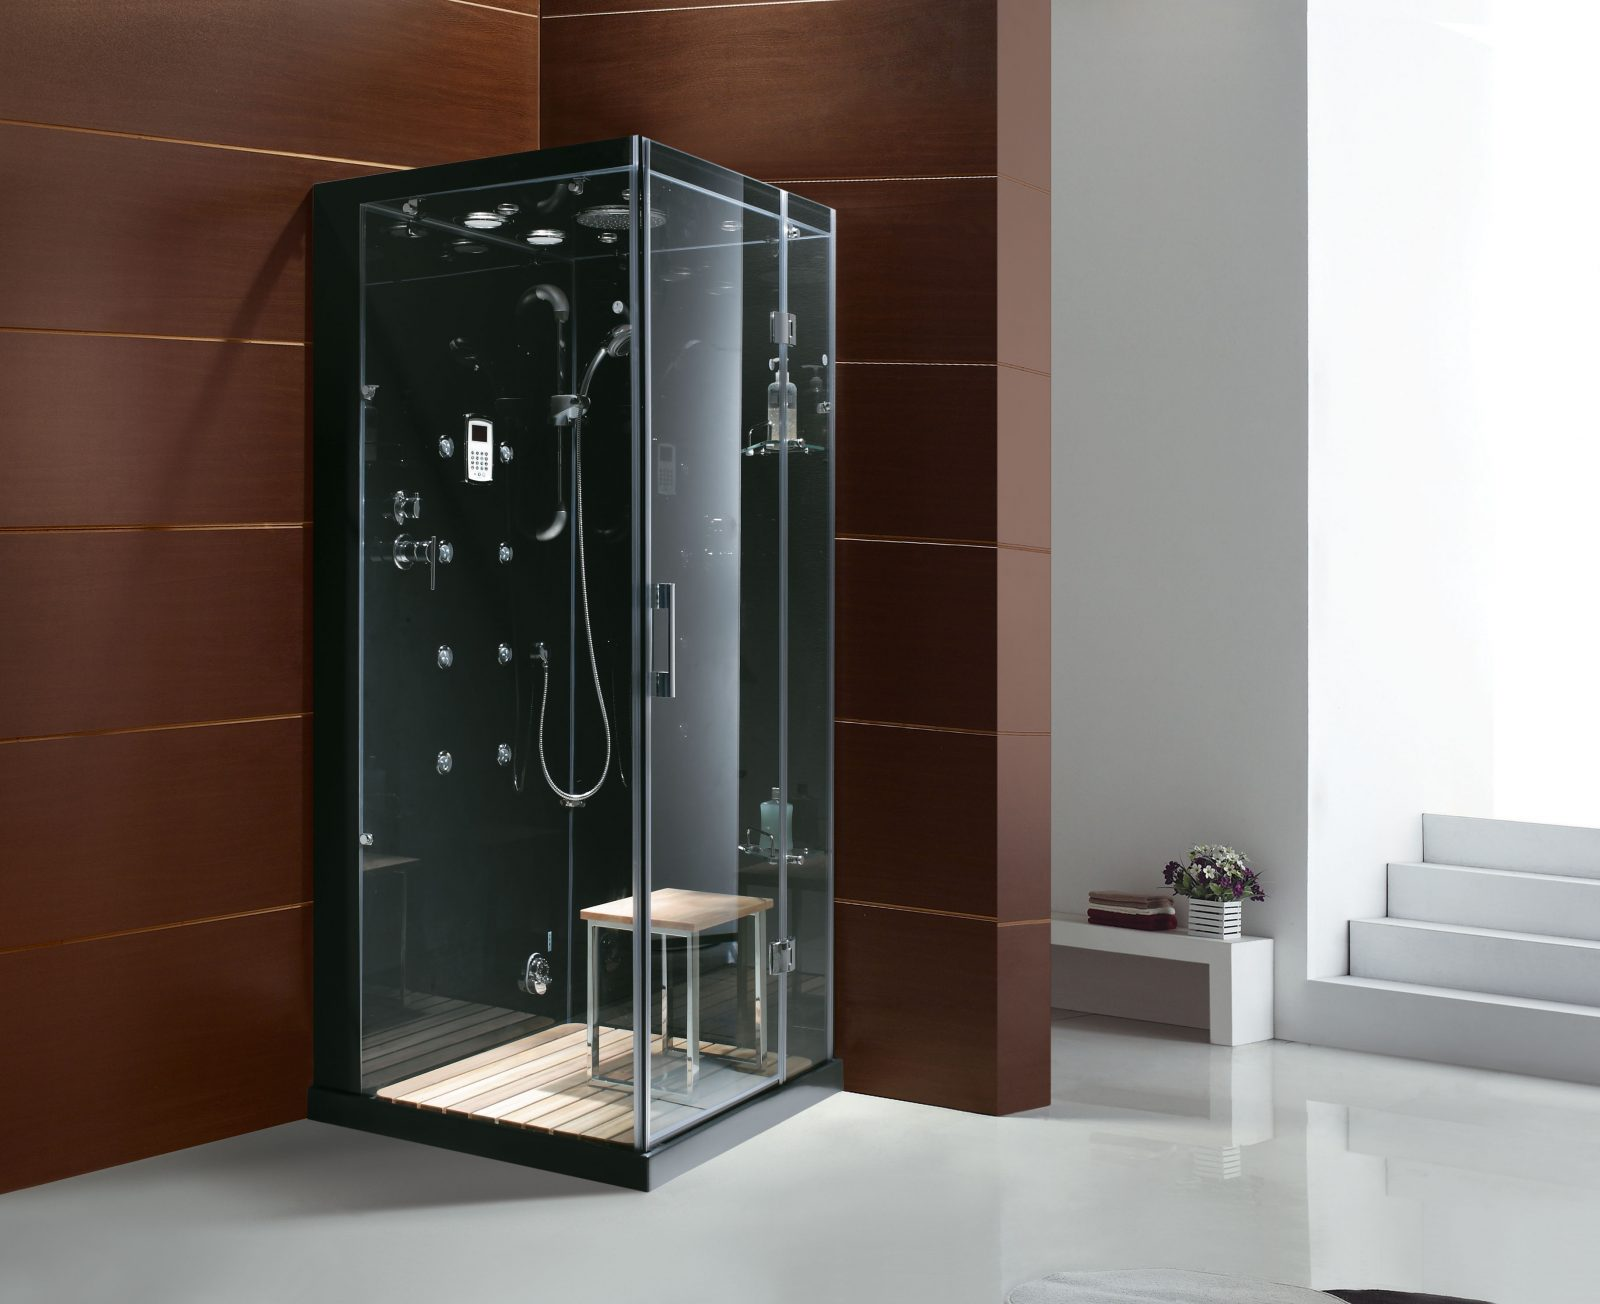 m a6023 right - Luxury Steam Showers